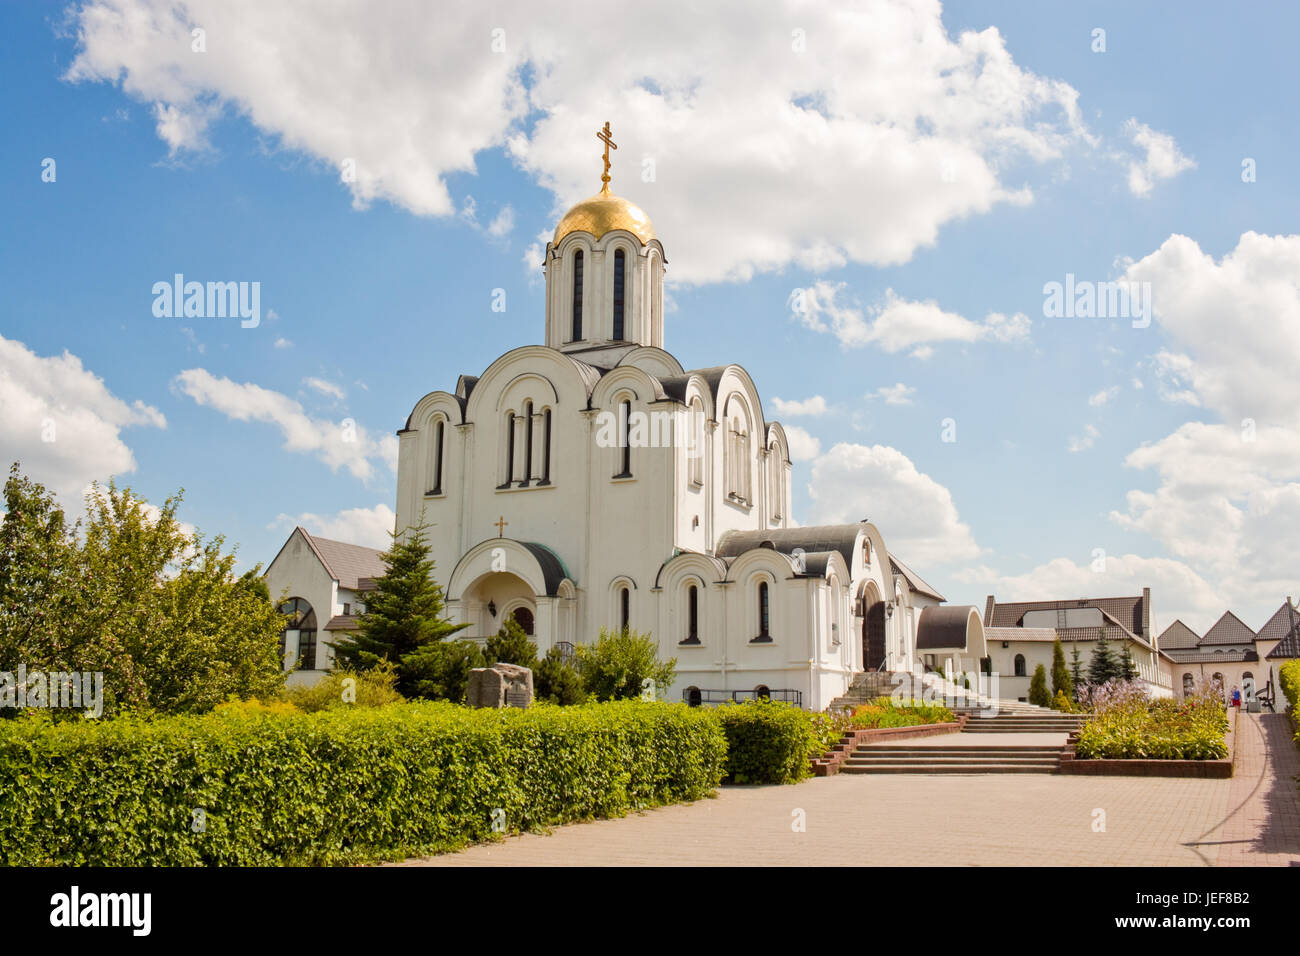 Orthodox church Mother of God Joy of All Who Sorrow in Minsk, Belarus. - Stock Image